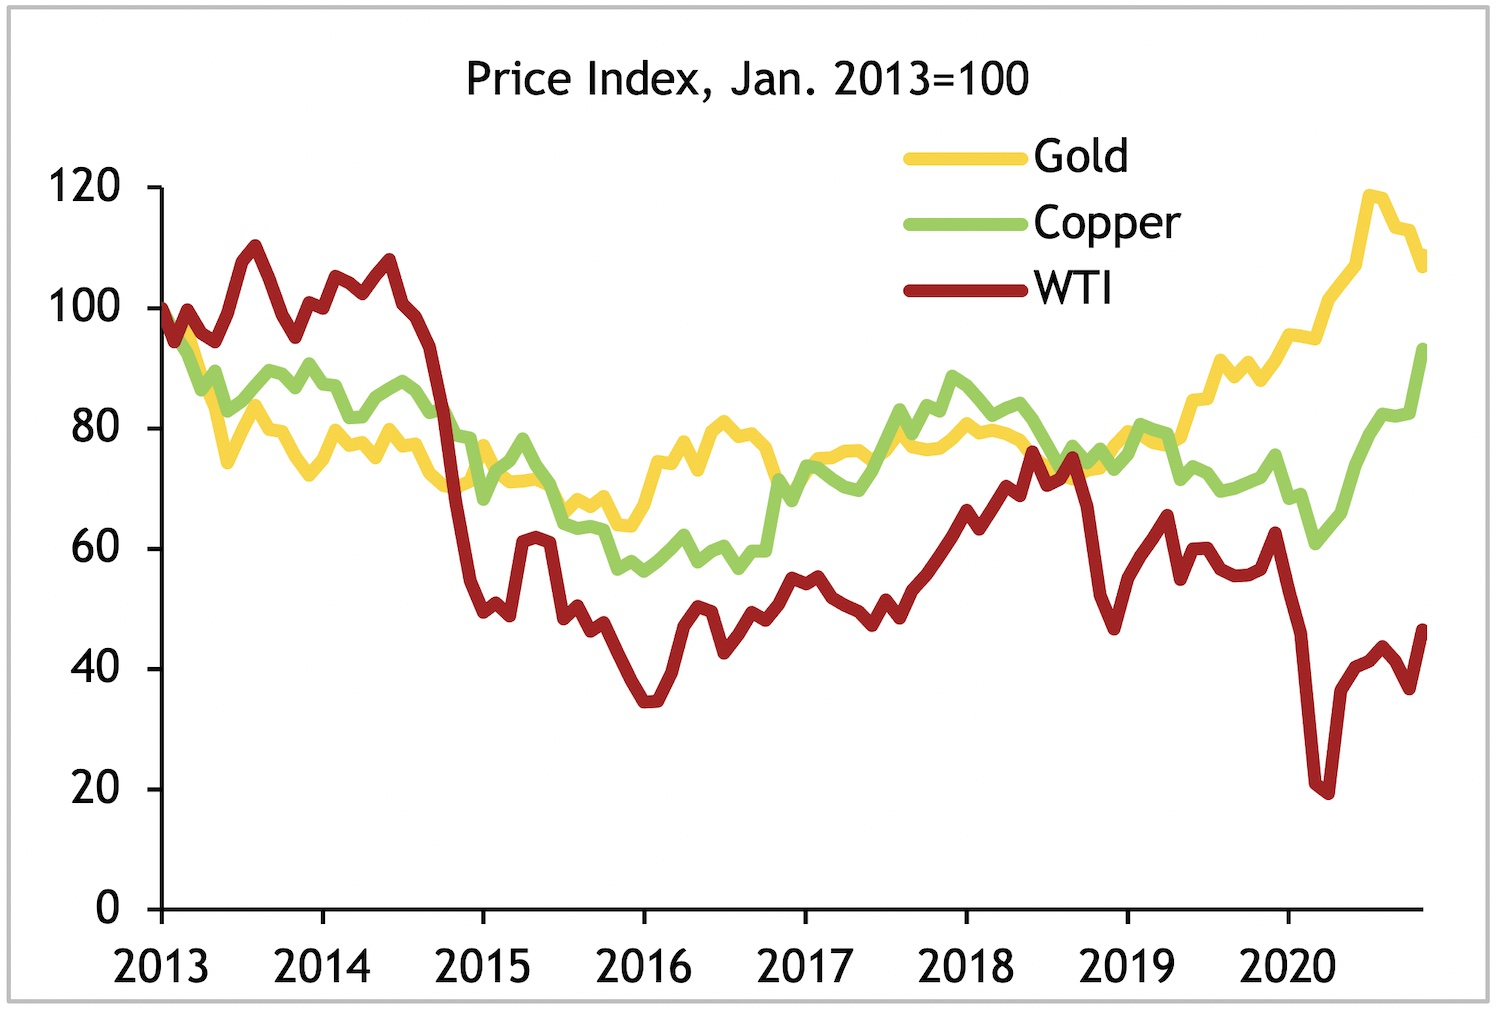 Chart showing WTI, copper and gold prices